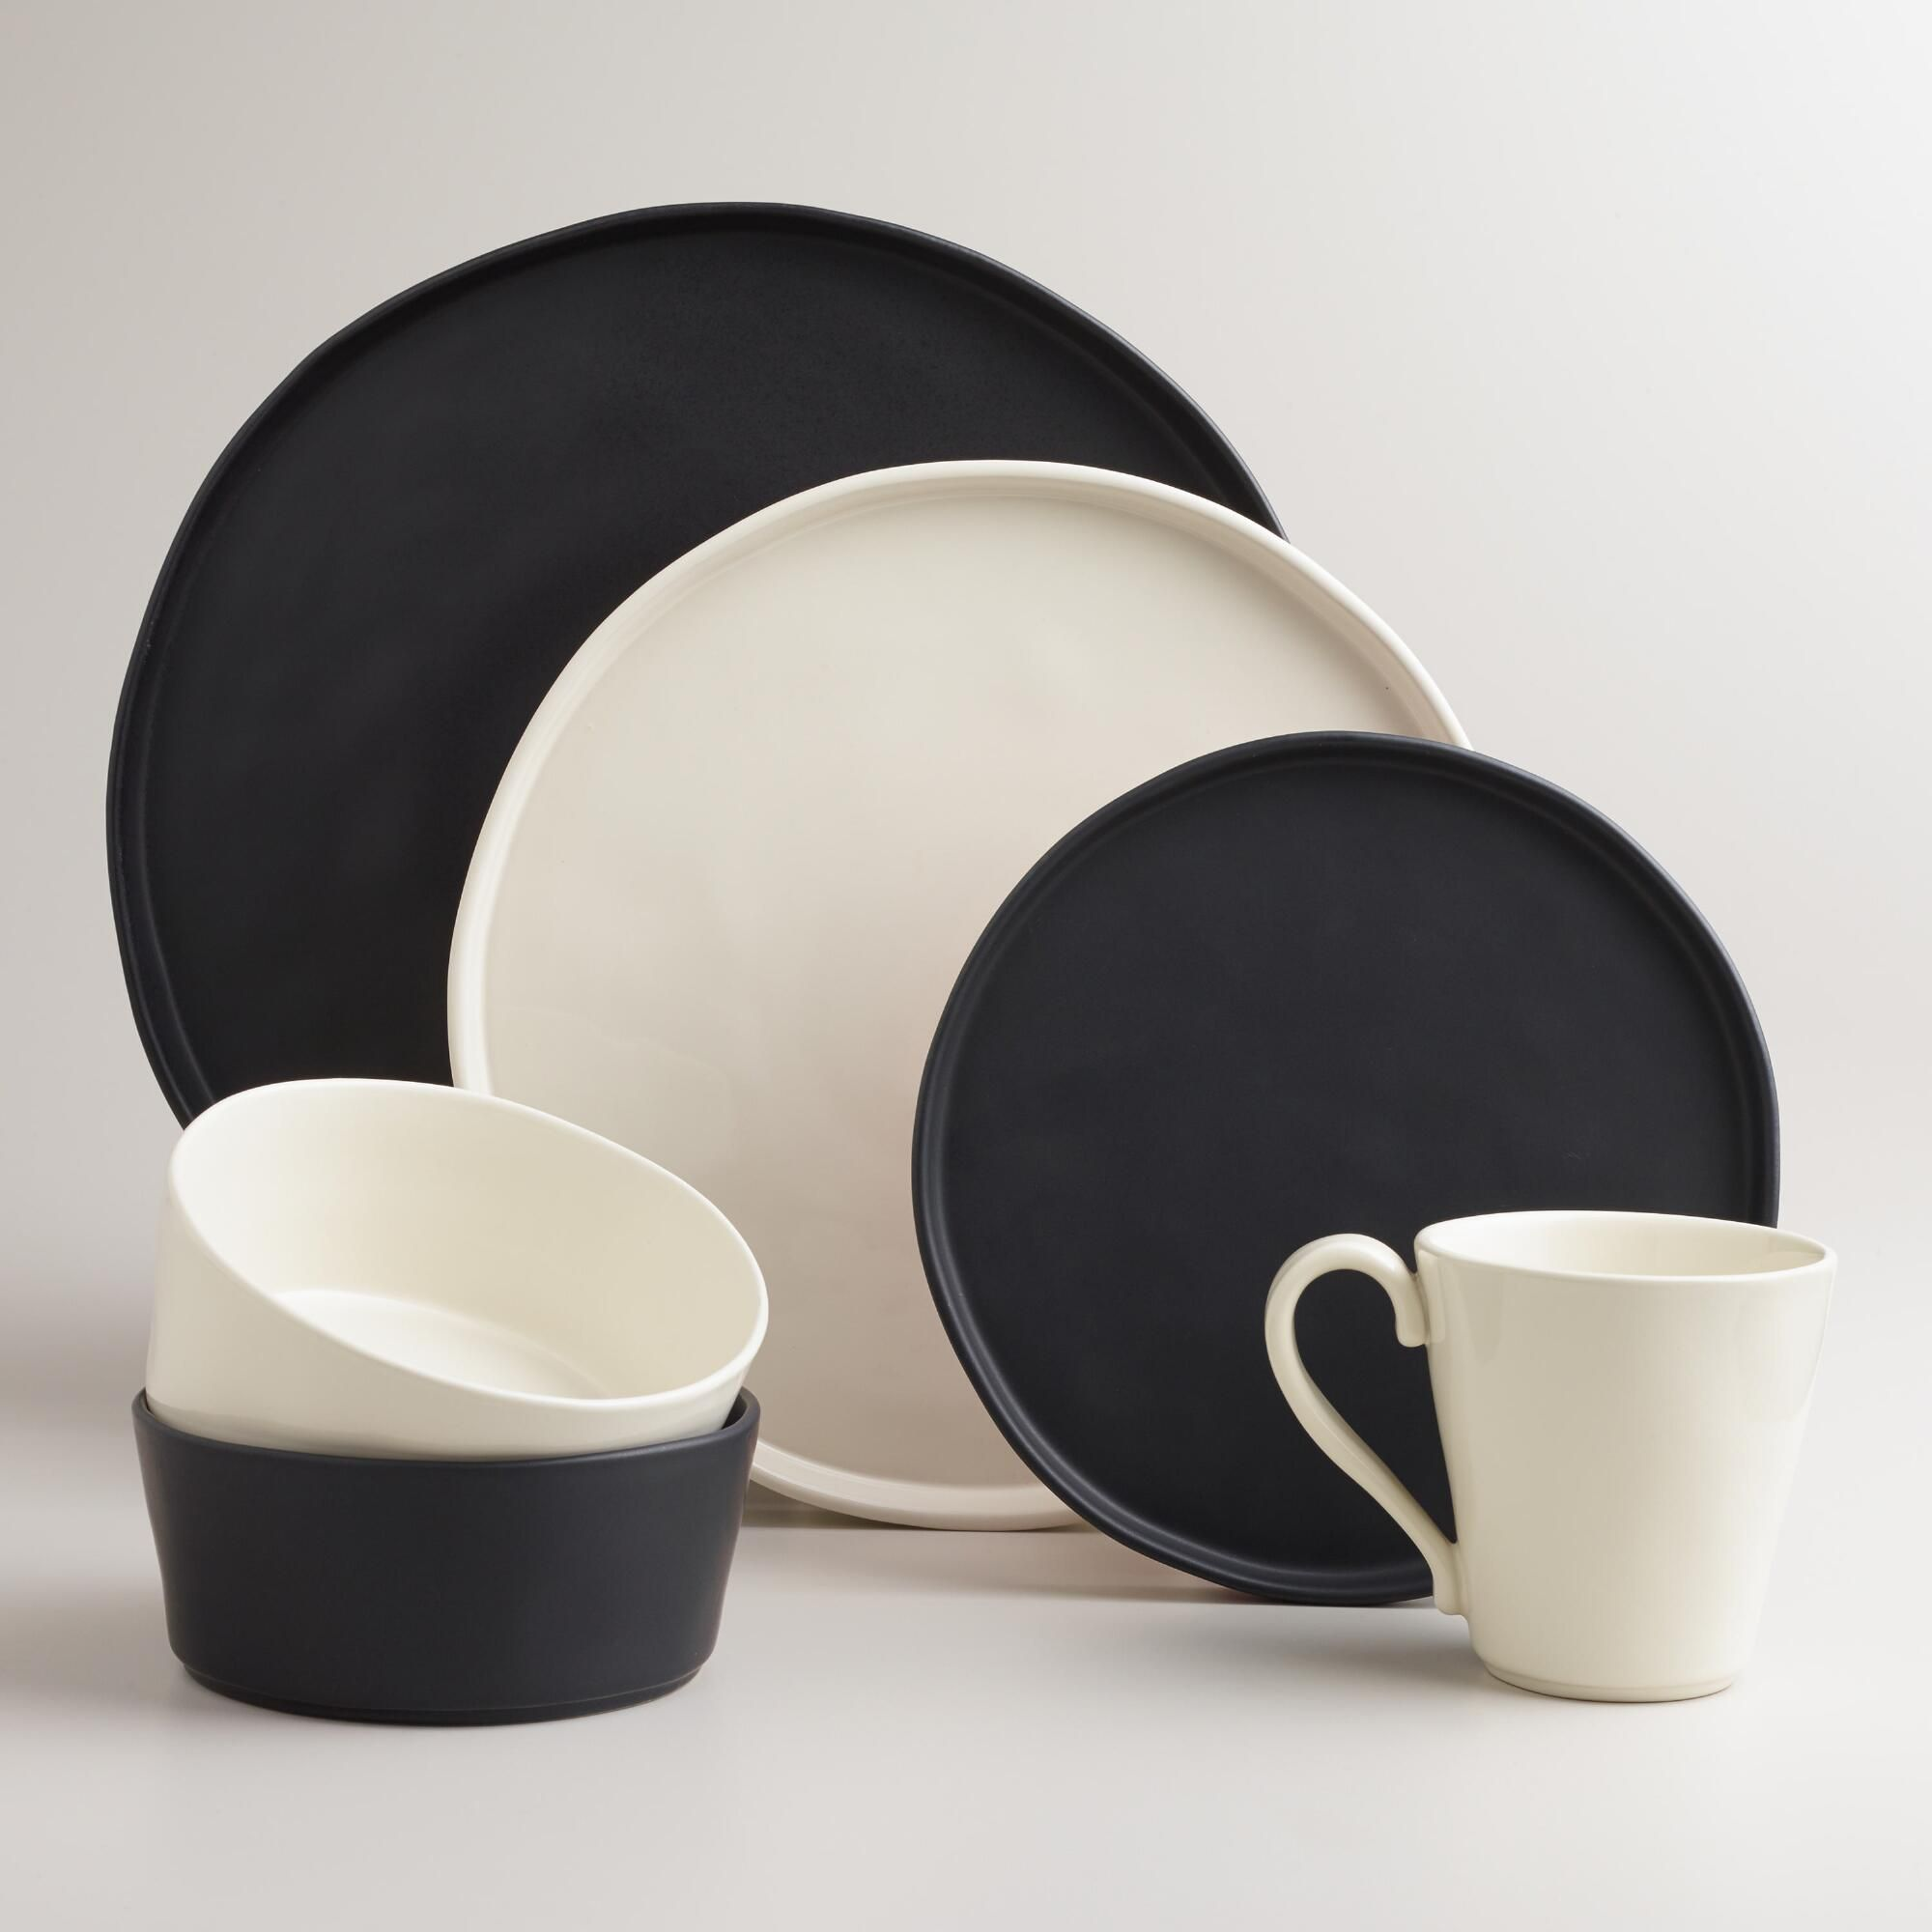 crafted in portugal of stoneware in a sleek organic shape our black saladplates. crafted in portugal of stoneware in a sleek organic shape our